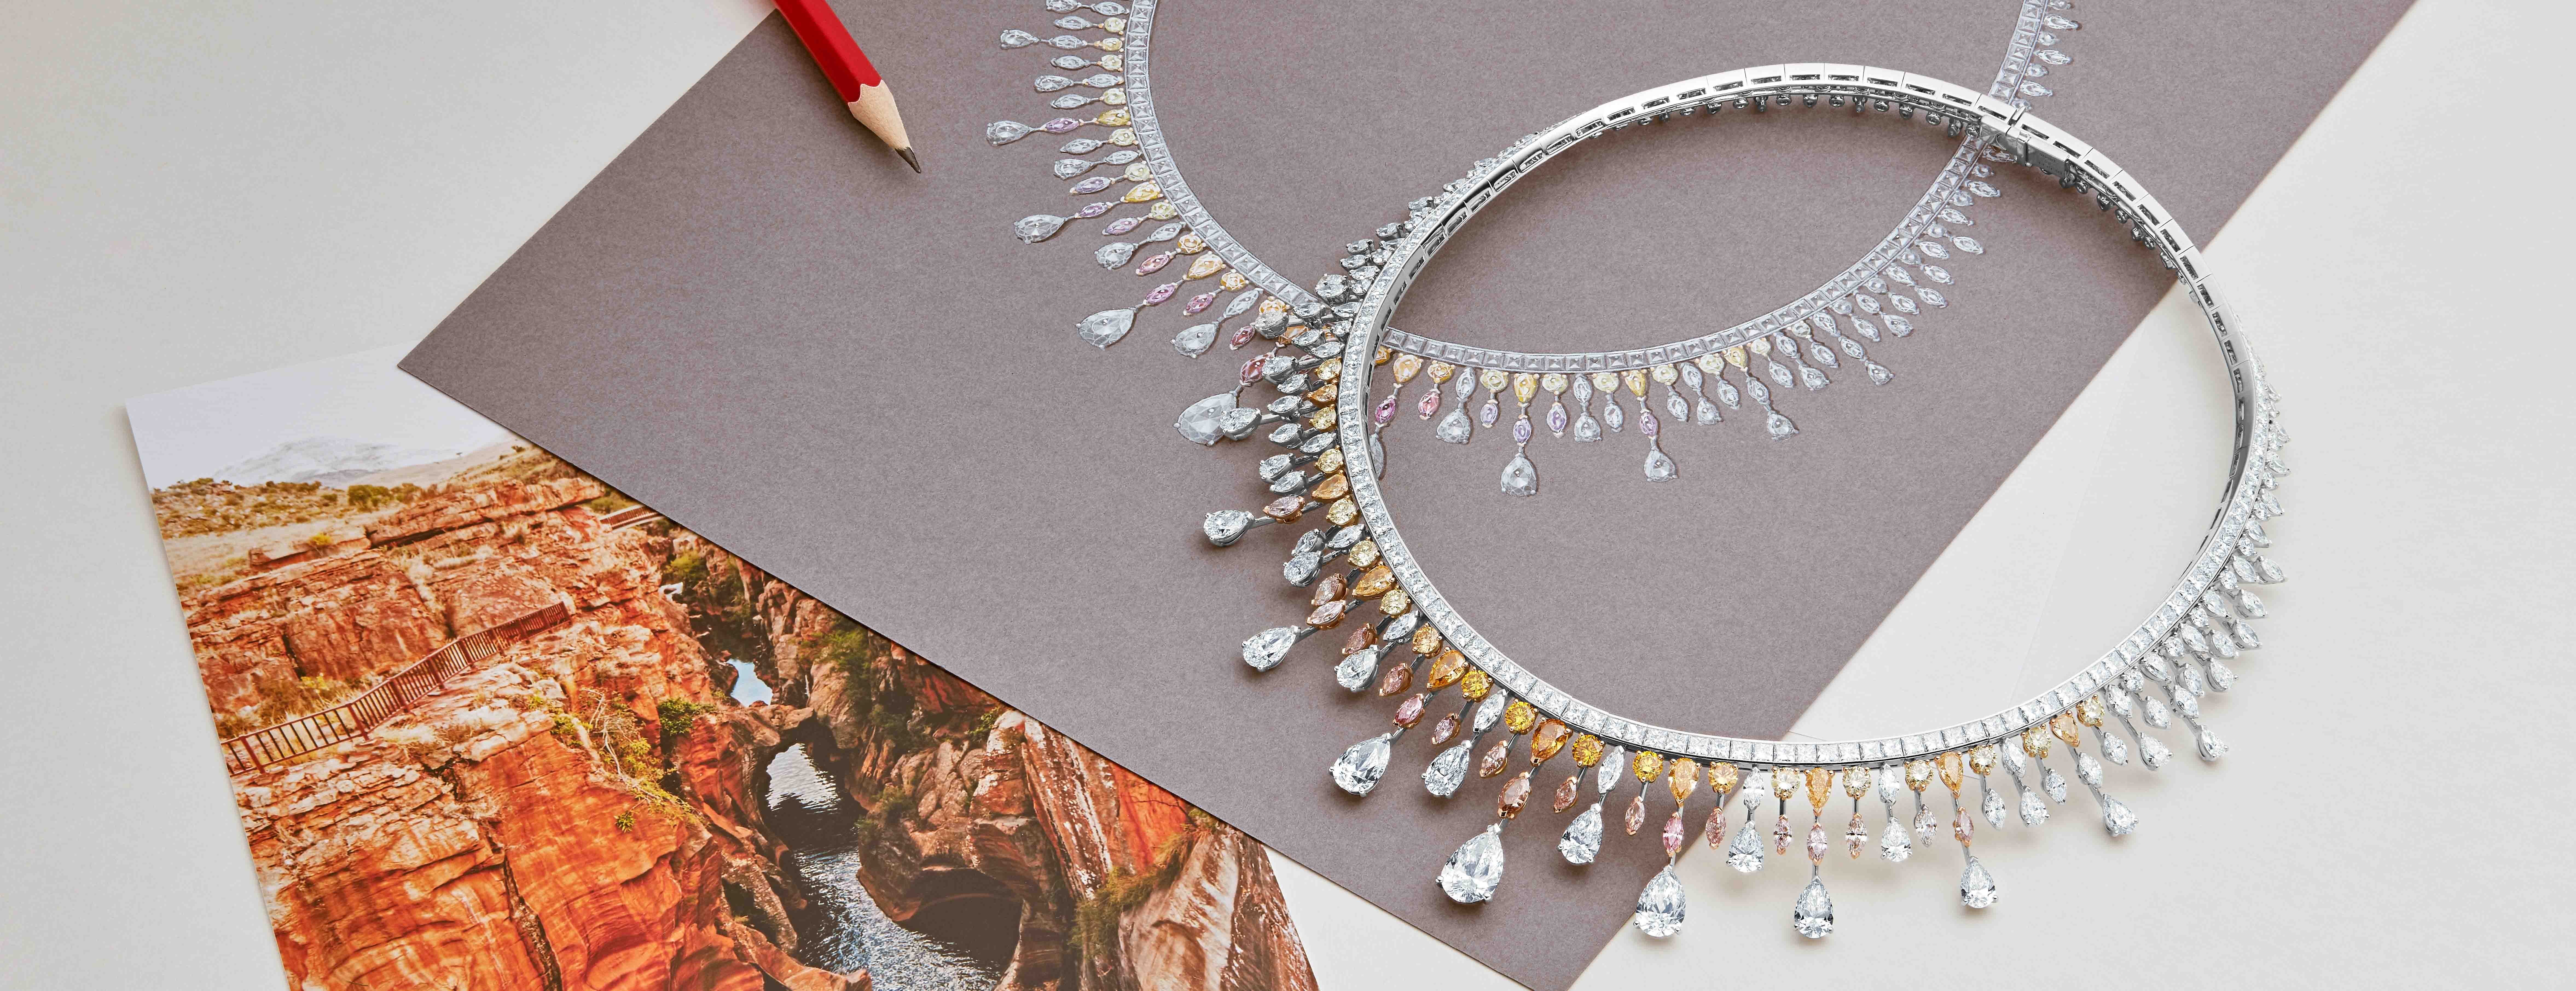 De Beers Reflections of Nature high jewellery diamond collection